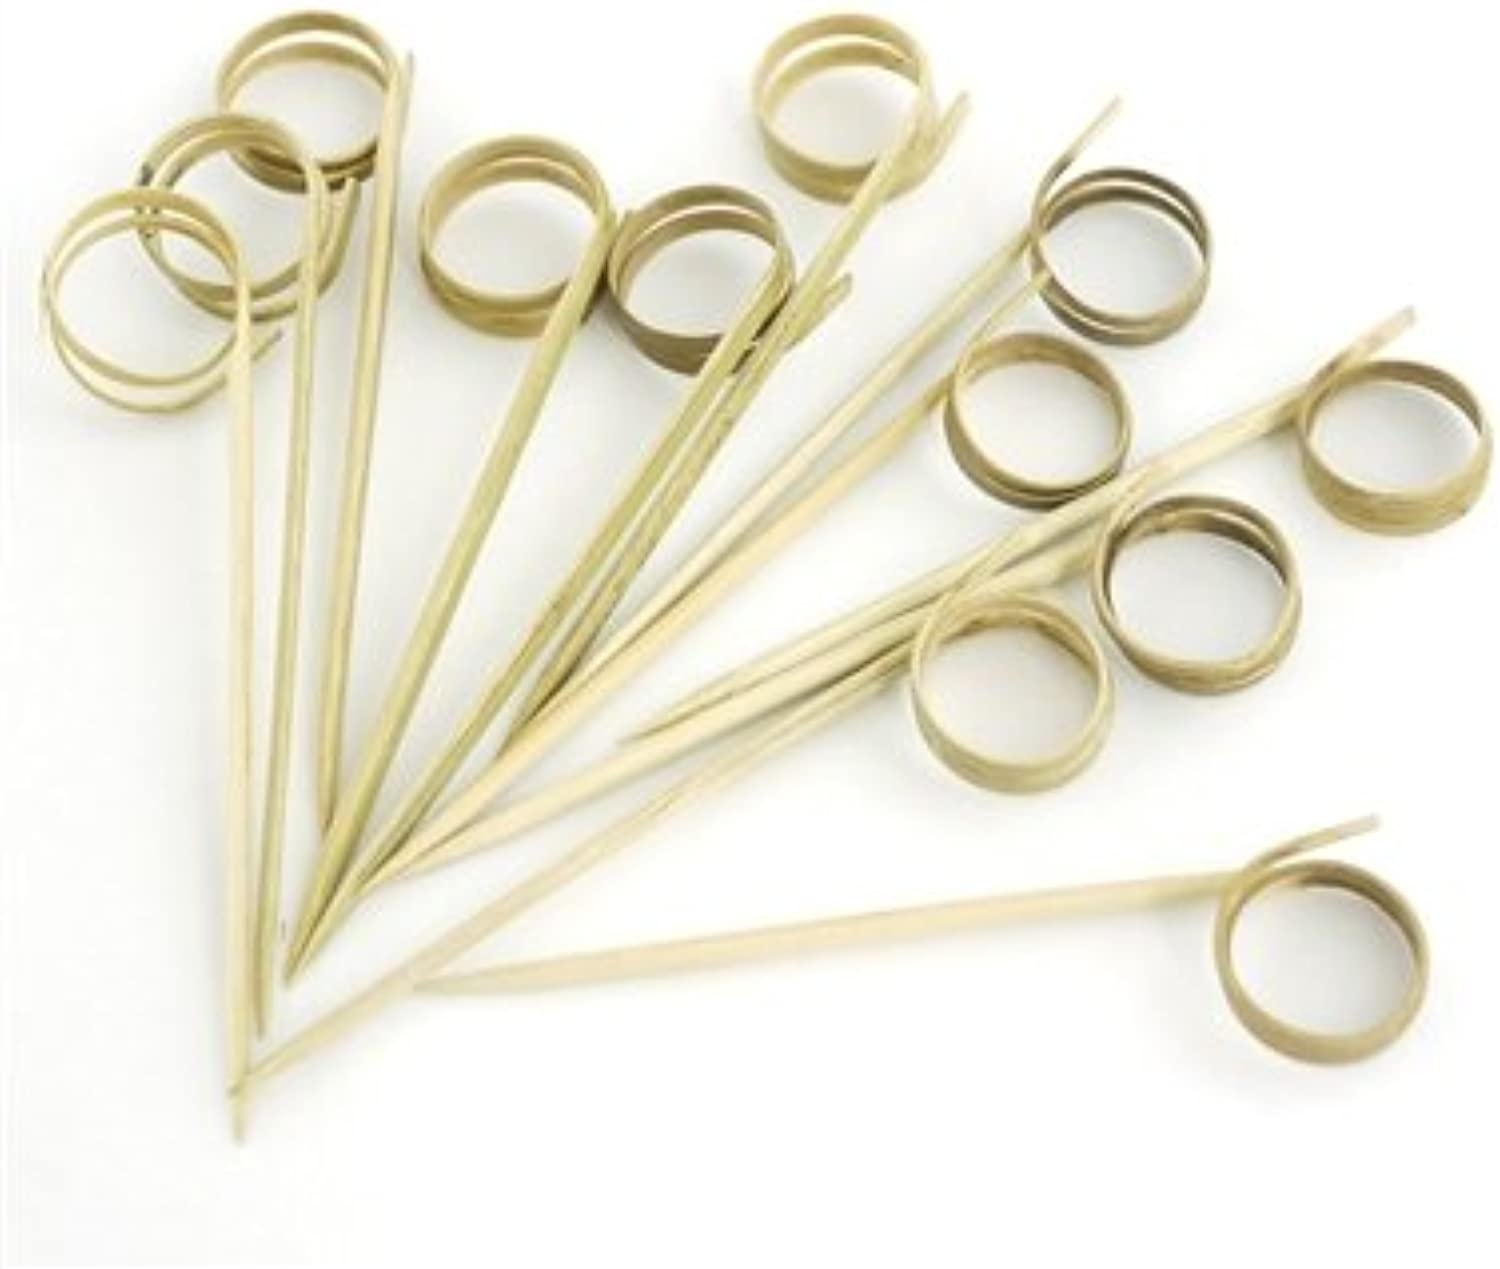 BambooMN 3.5  Decorative Loop Ring Card Holder Cocktail Fruit Sandwich Picks Skewers for Catered Events, Holiday's, Restaurants or Buffets Party Supplies, 1000 Pieces